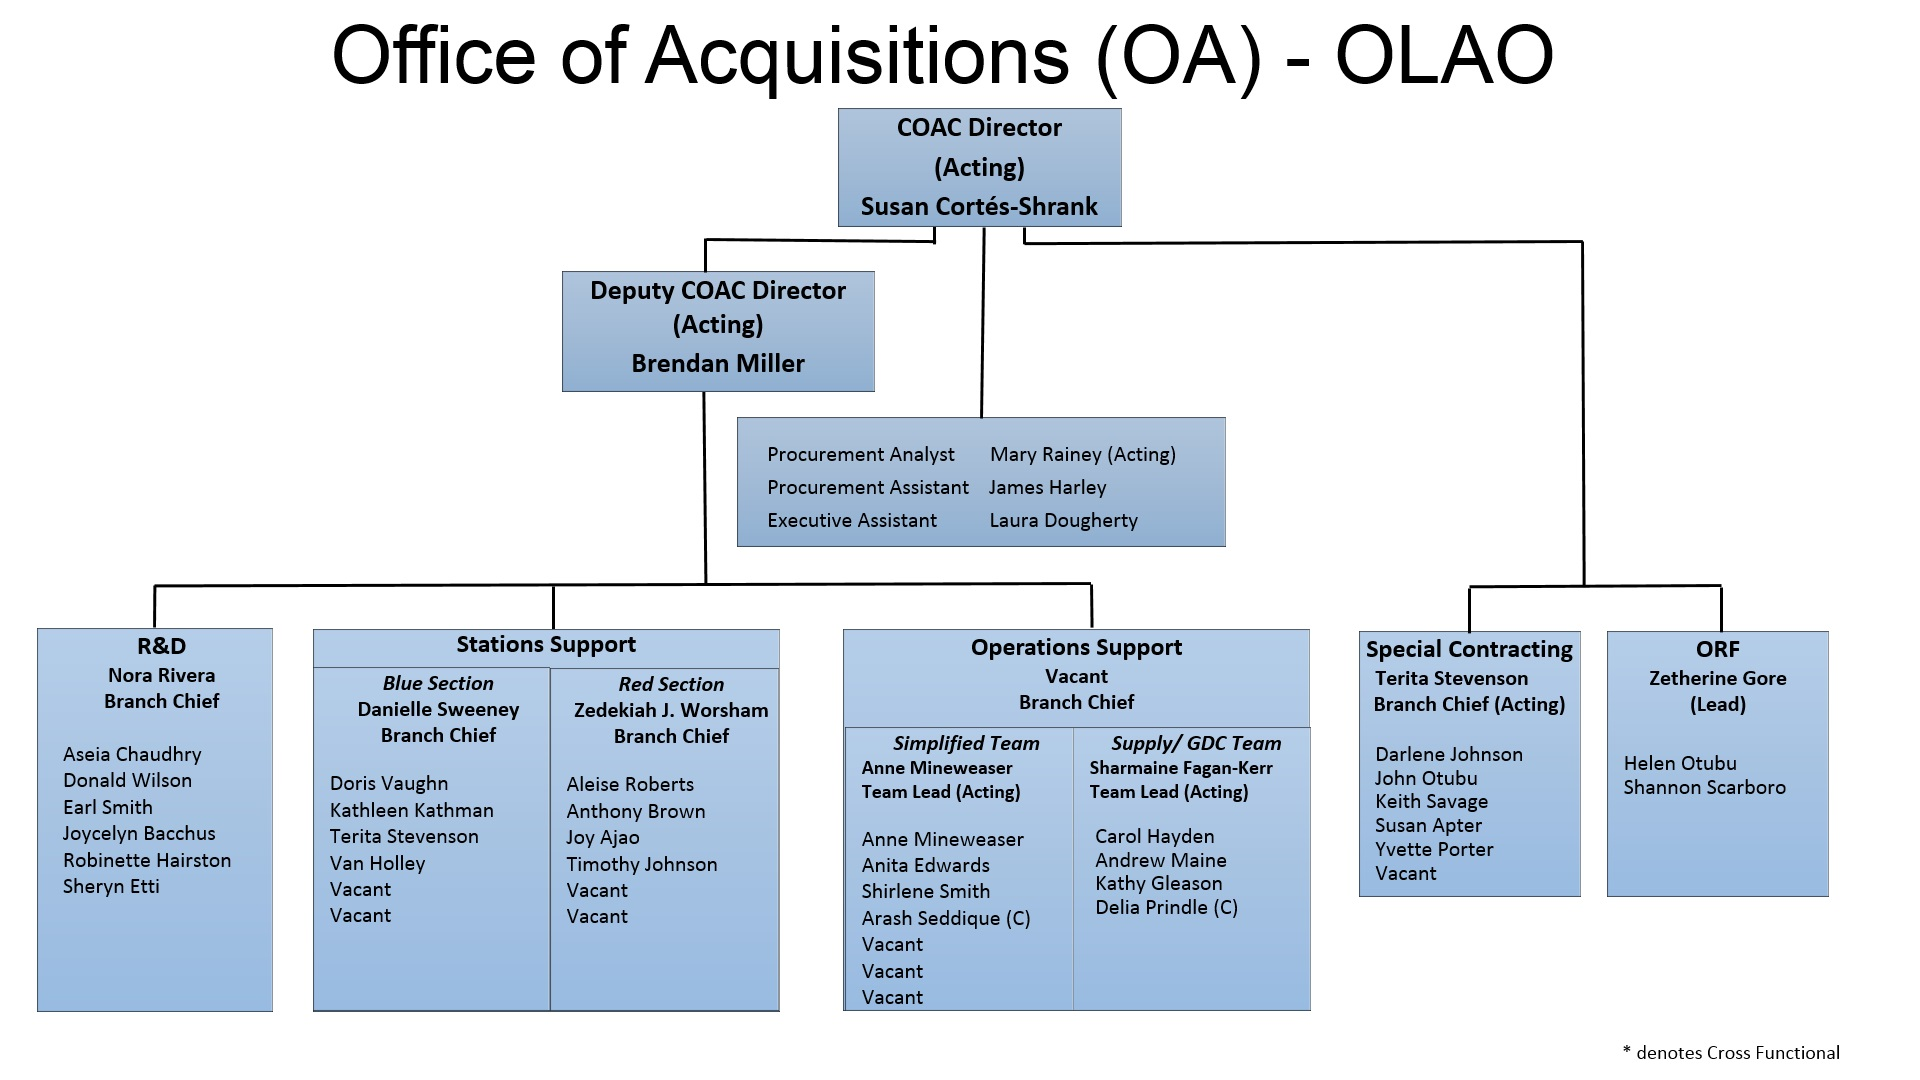 Office of Acquisitions Organization Chart